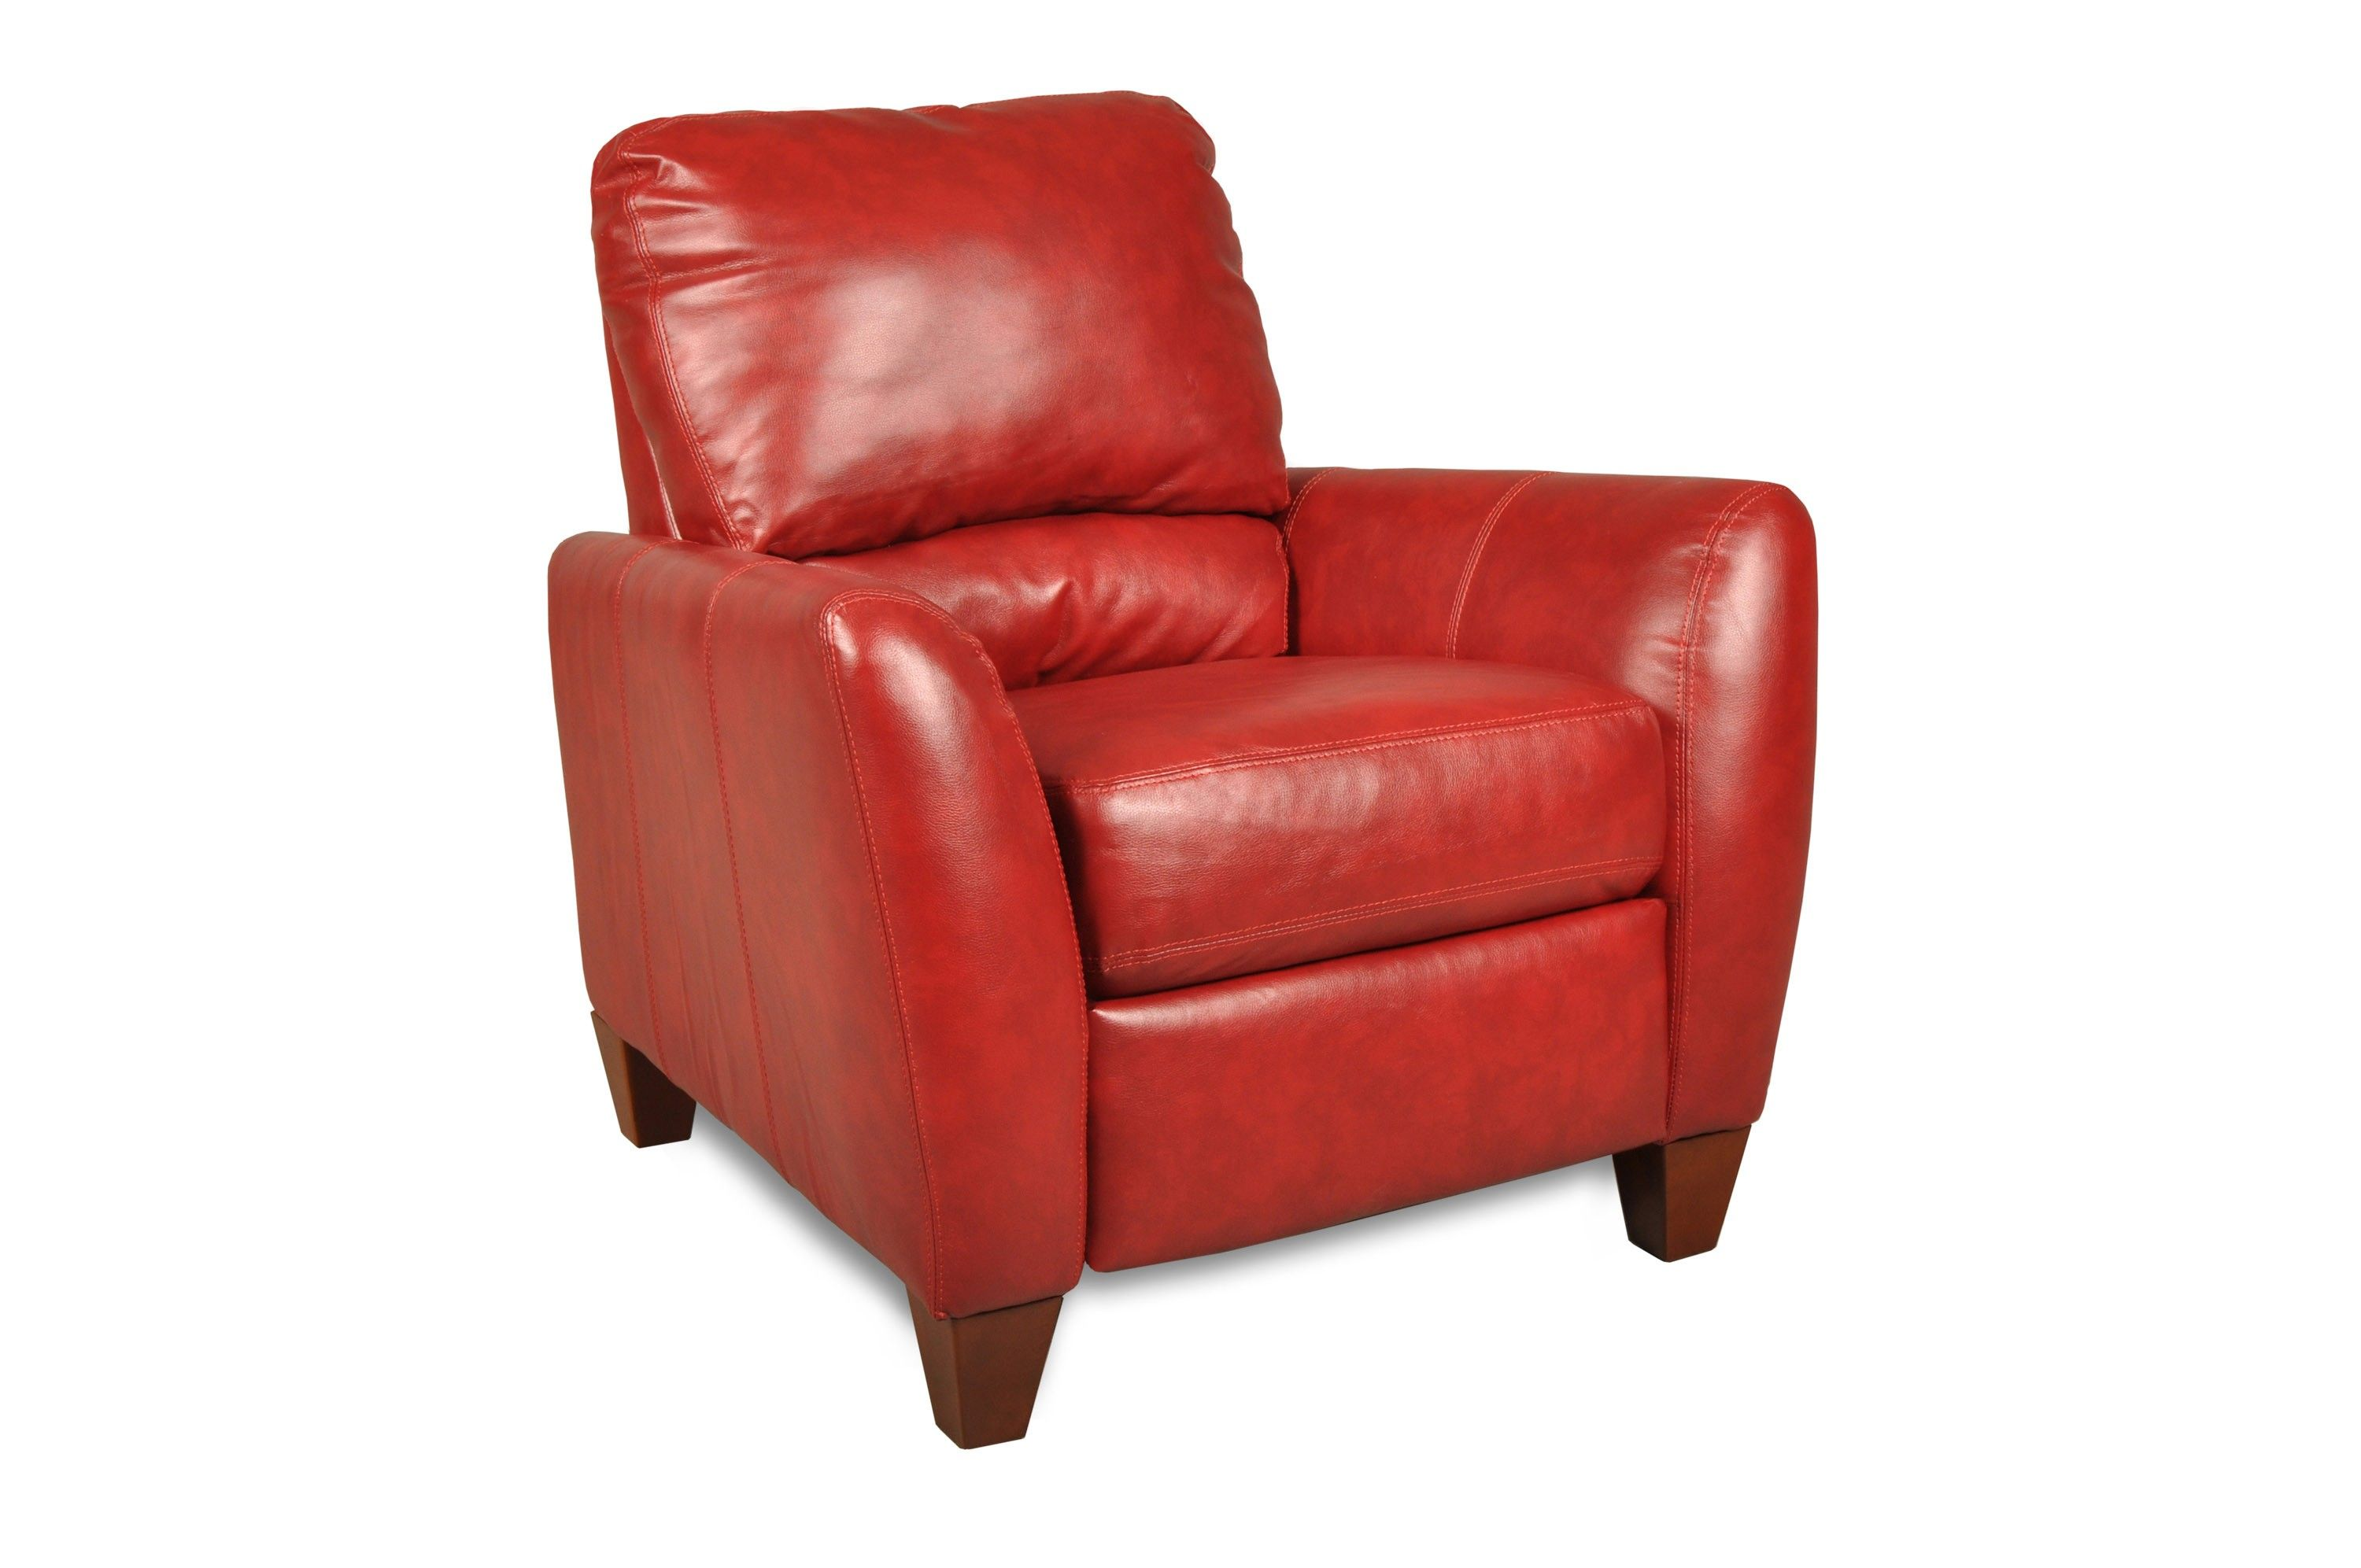 Salem Recliner by Chelsea Home Furniture in Como Bold Red 730275-86-GENS-39962 | Recliners & Rockers  Not necessarily in red...